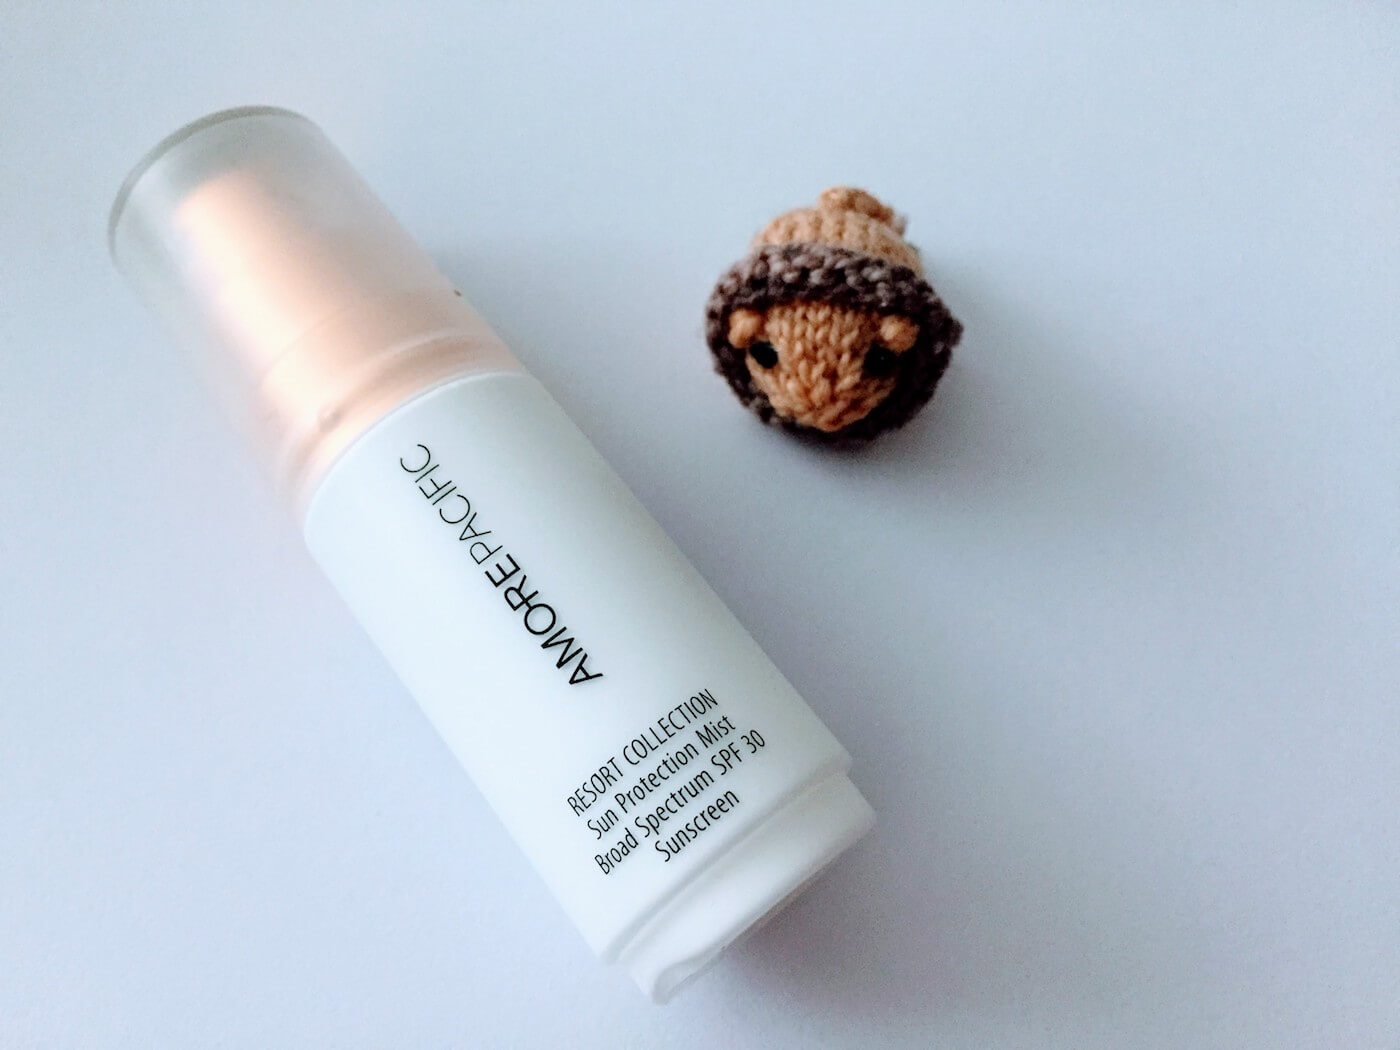 AmorePacific Resort Collection Sun Protection Mist Review